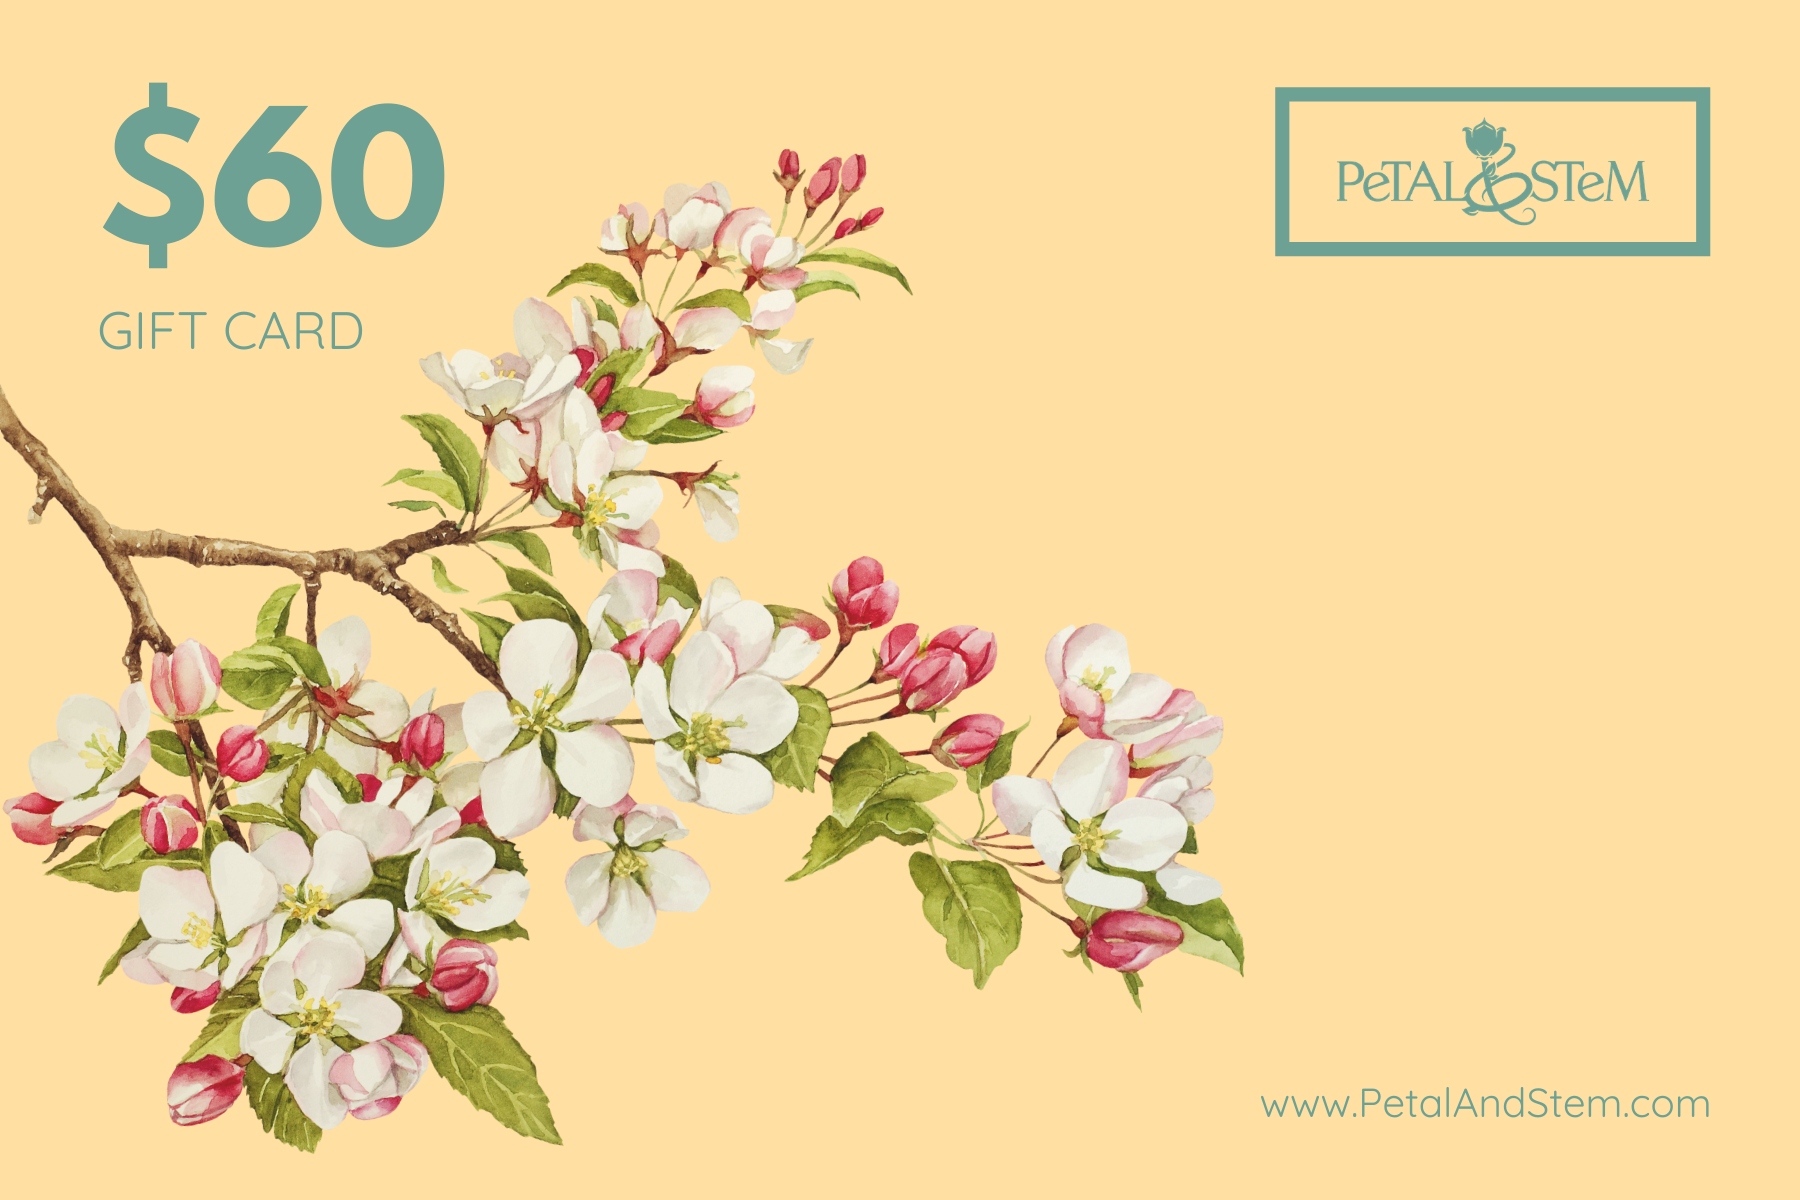 Gift Card for Essential Oils and Aromatherapy - Petal and Stem